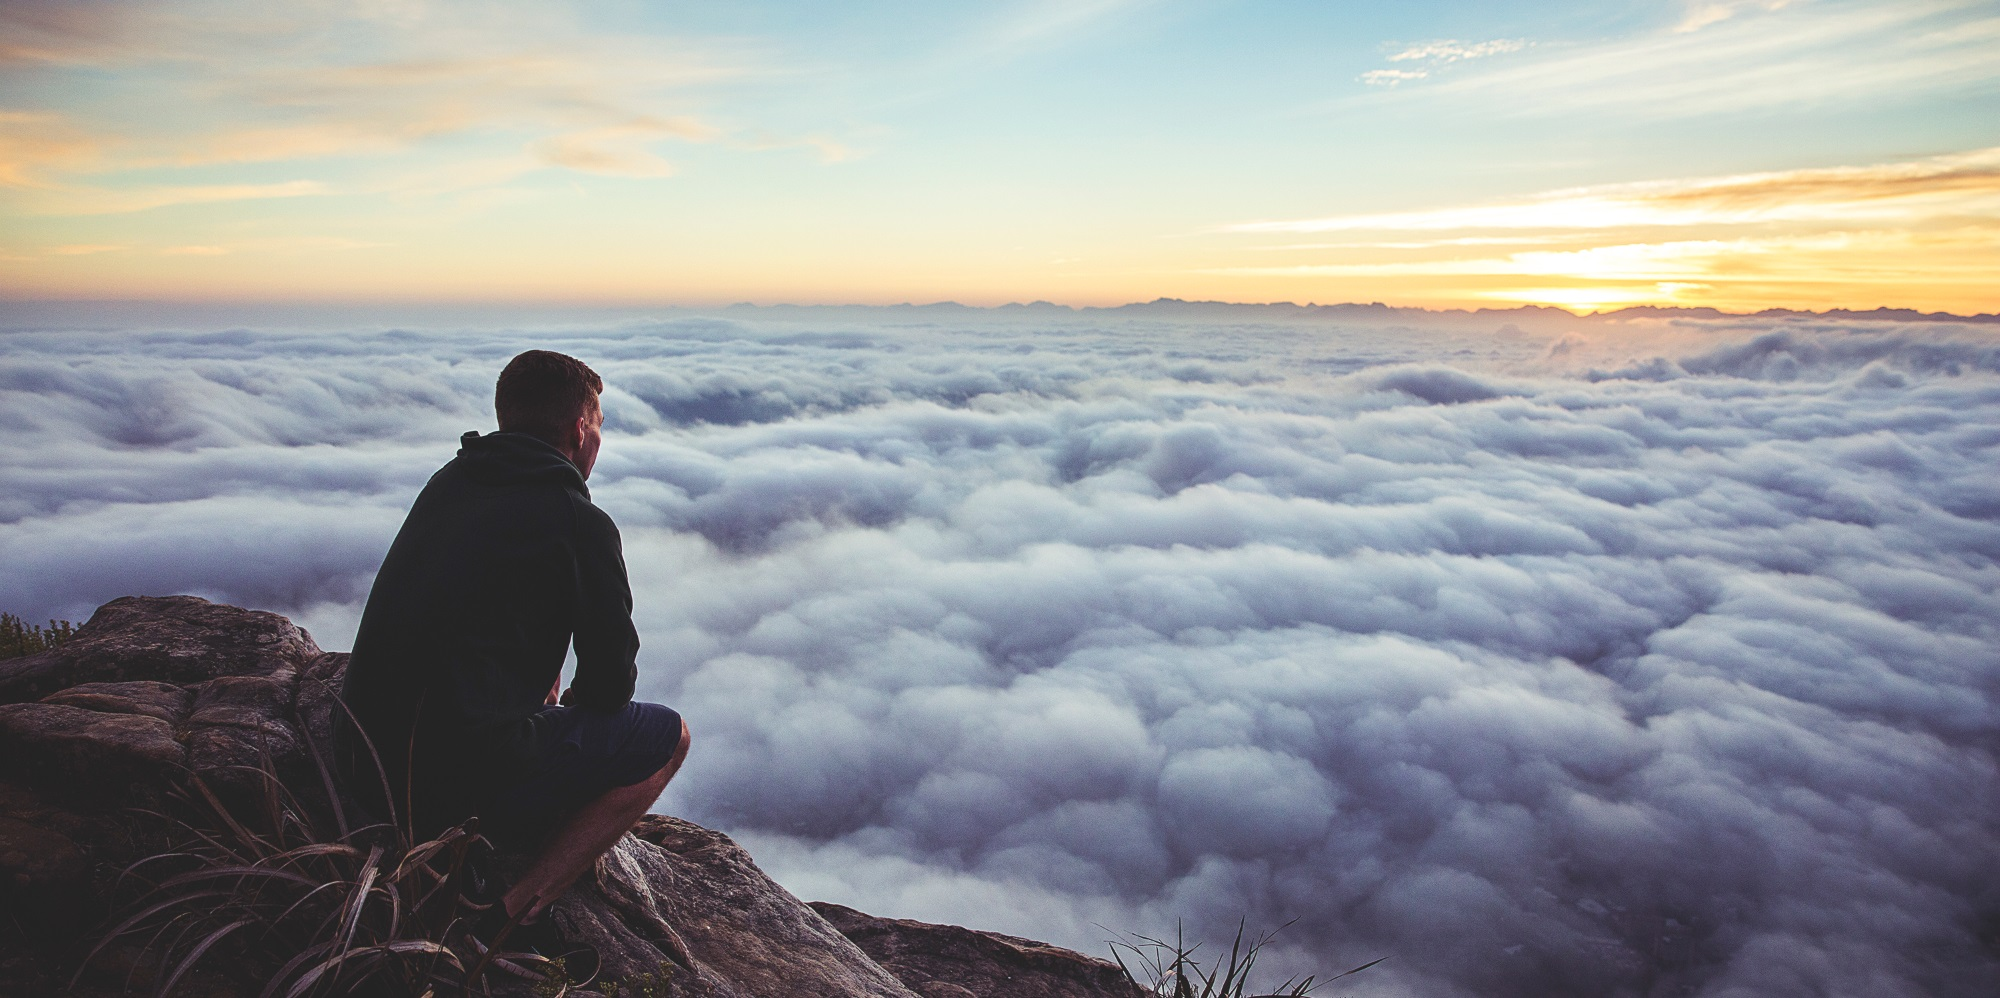 Man on Mountaintop Representing Legacy Portfolio Receiving New Vision from Financial Advisors